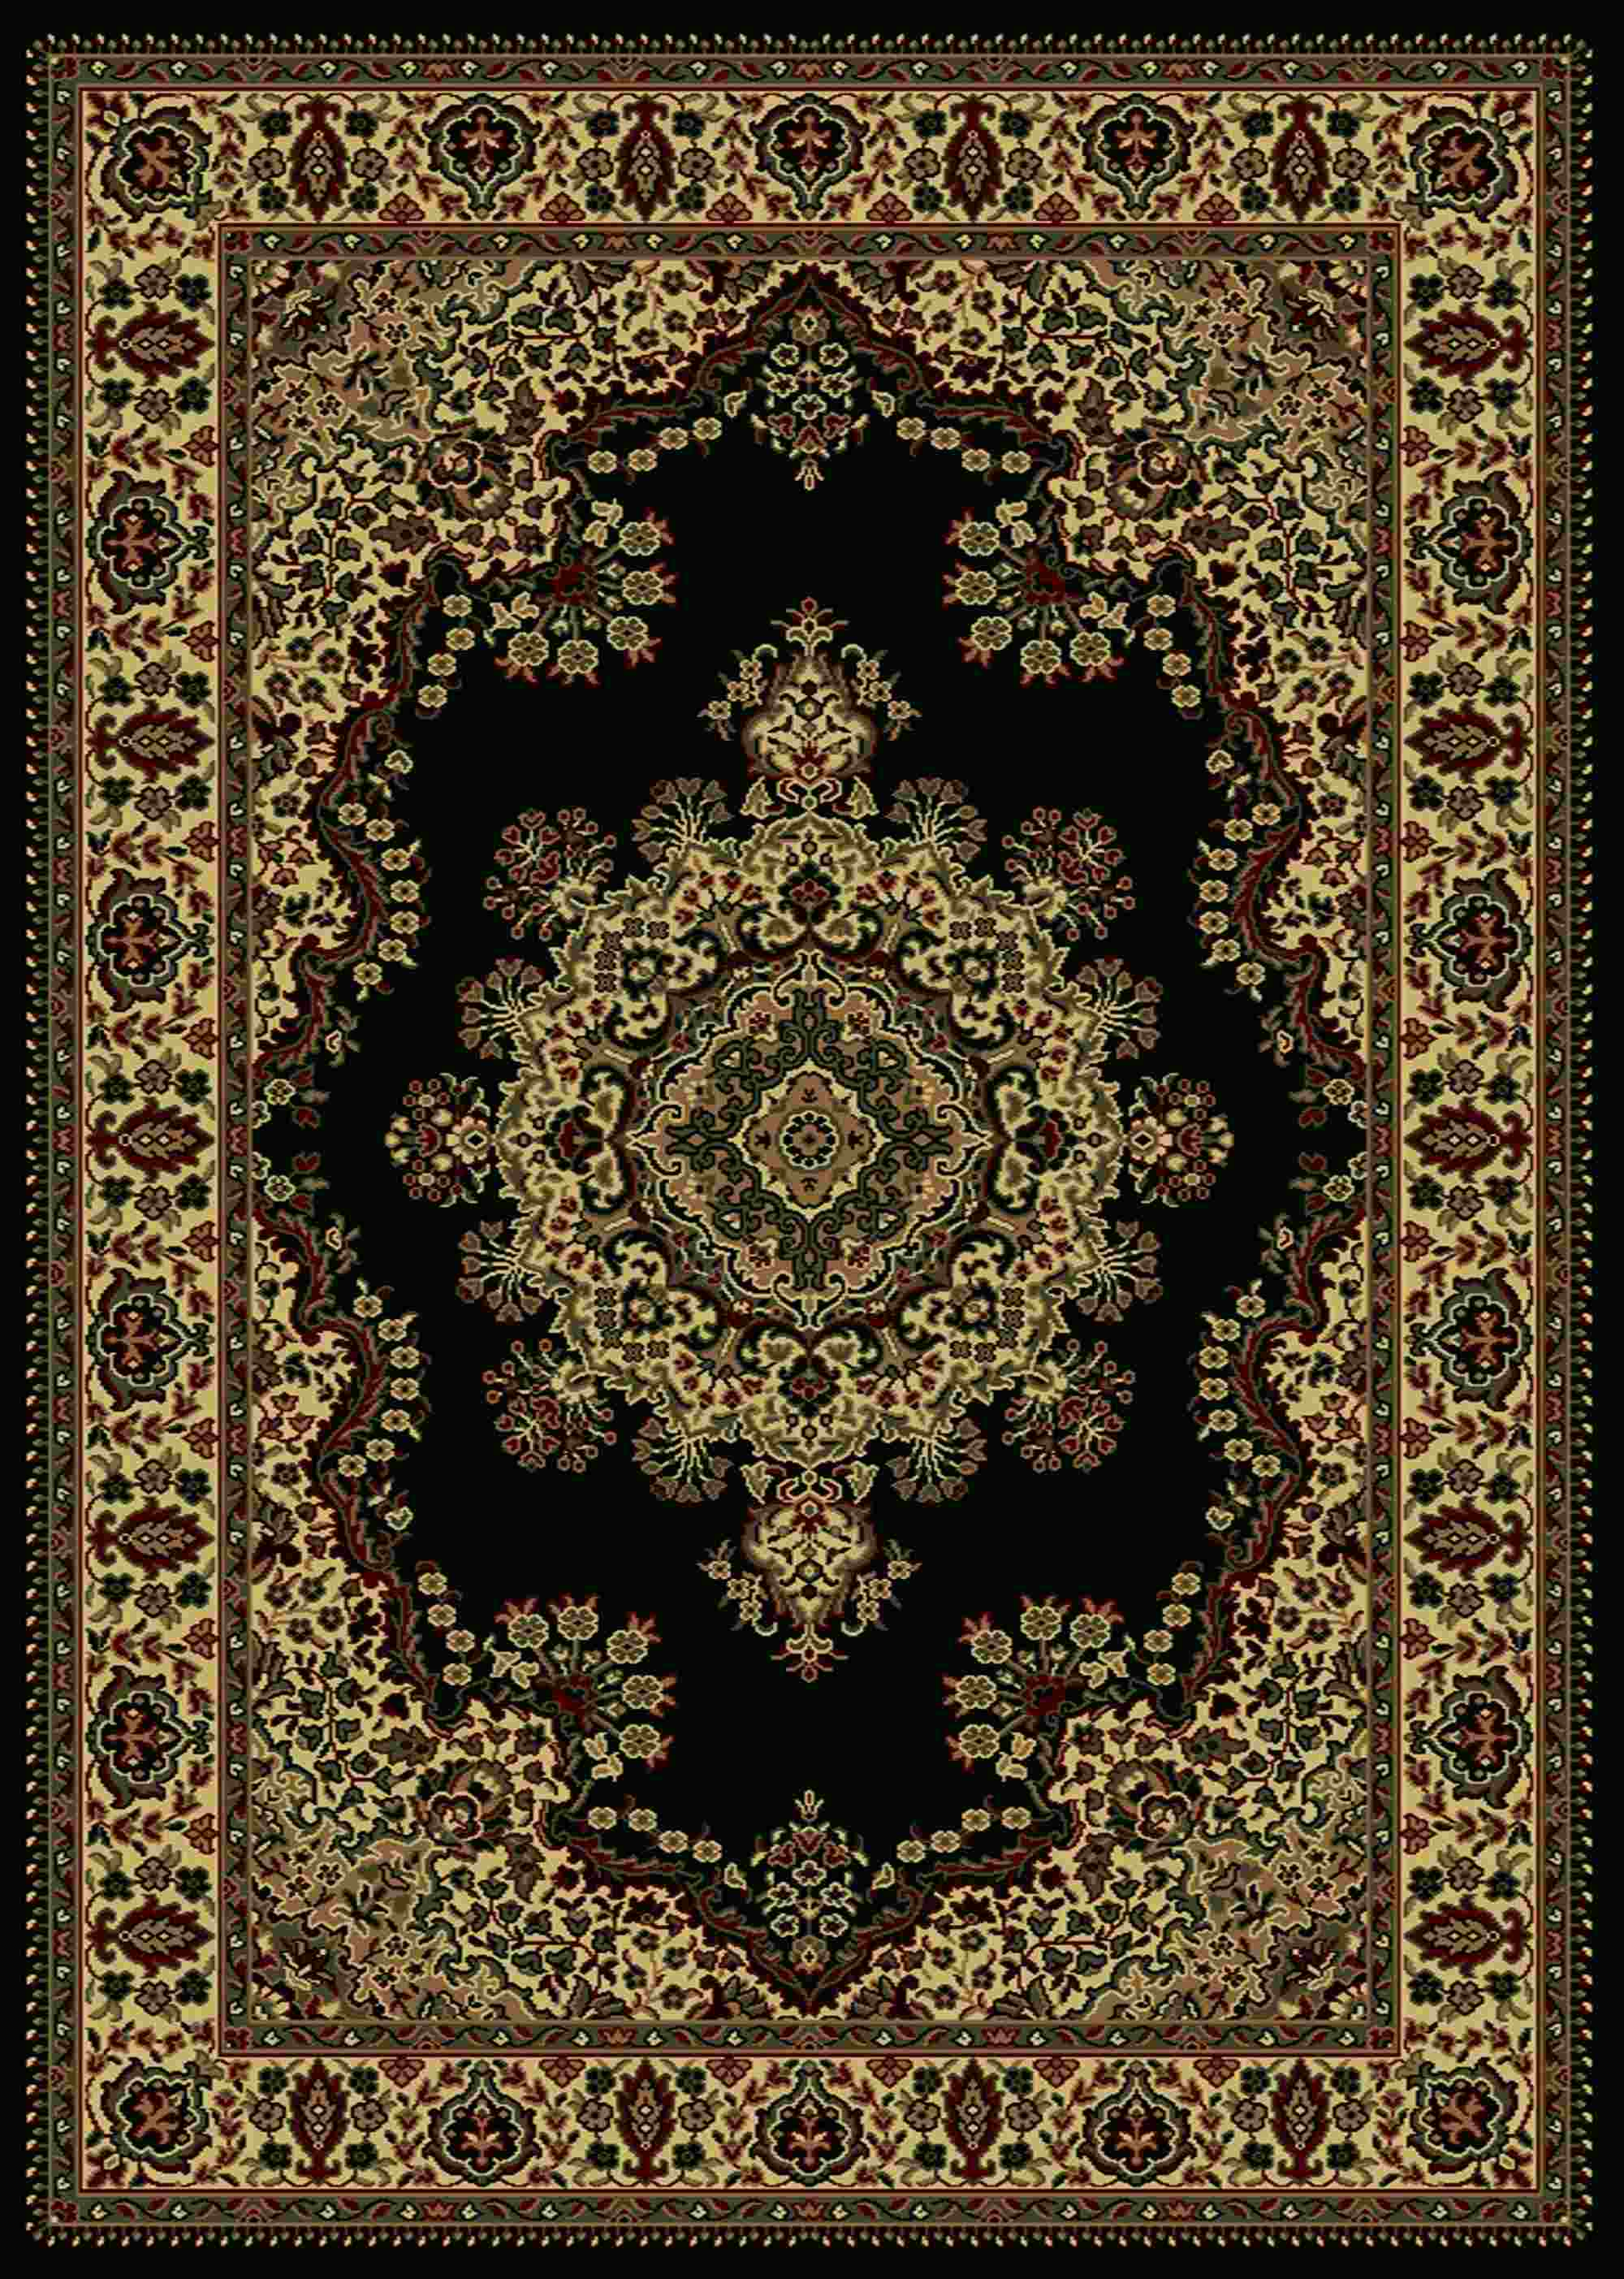 Radici Usa Castello 1191 Black Traditional Area Rug